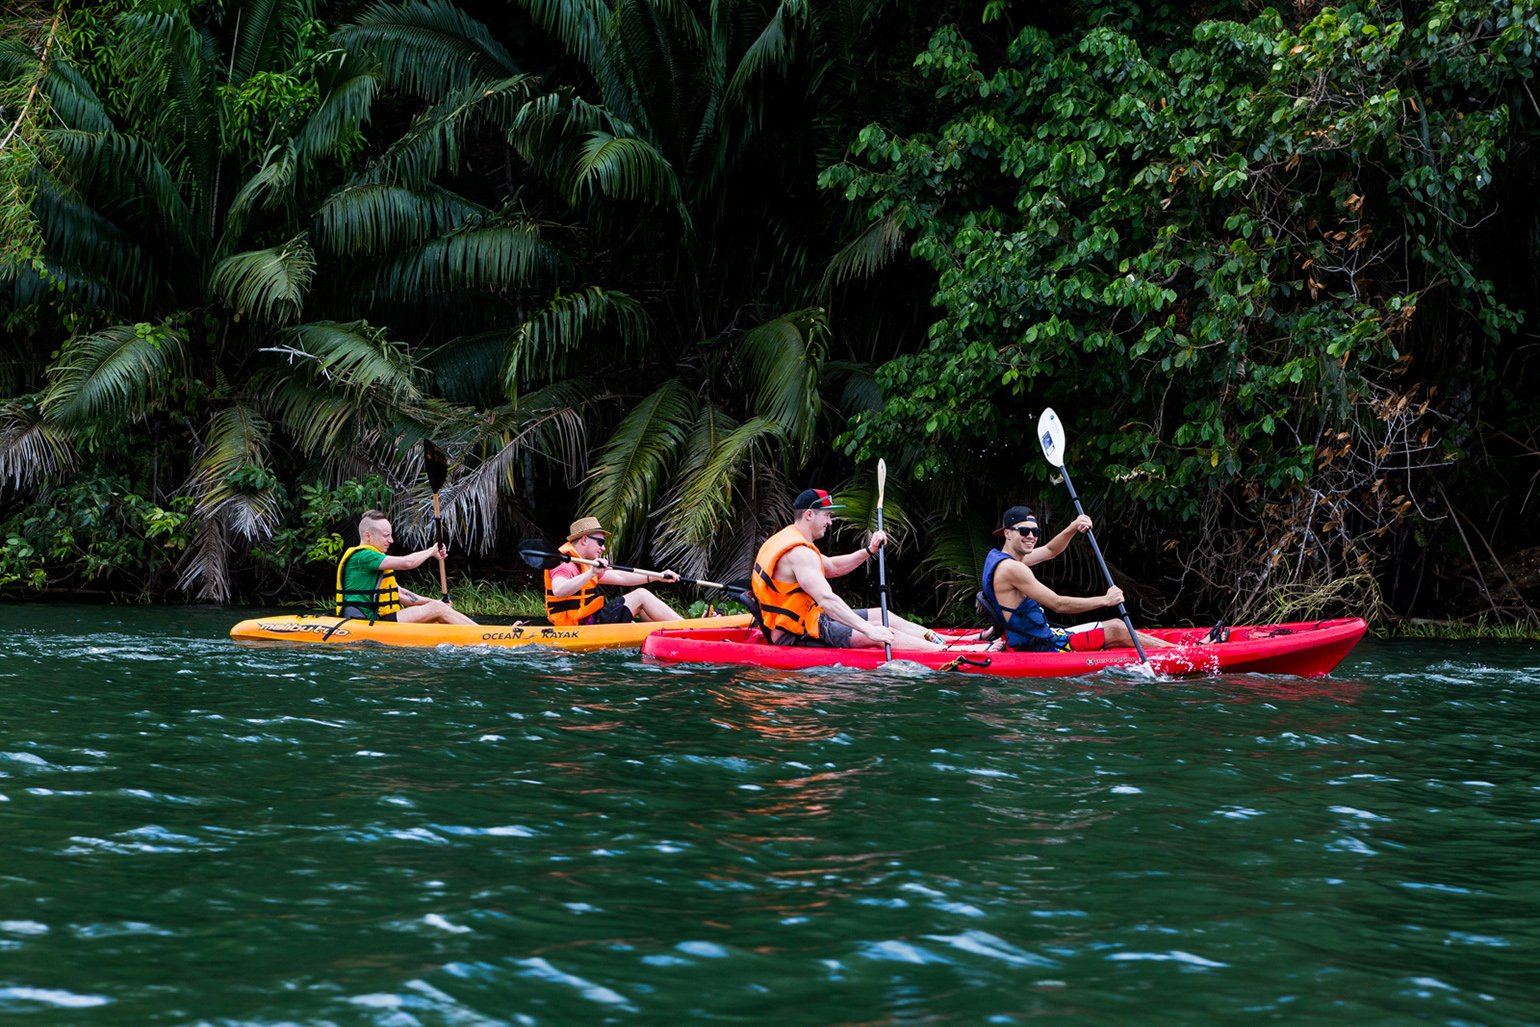 Group of people doing kayaking in Panama waters - MailerLite